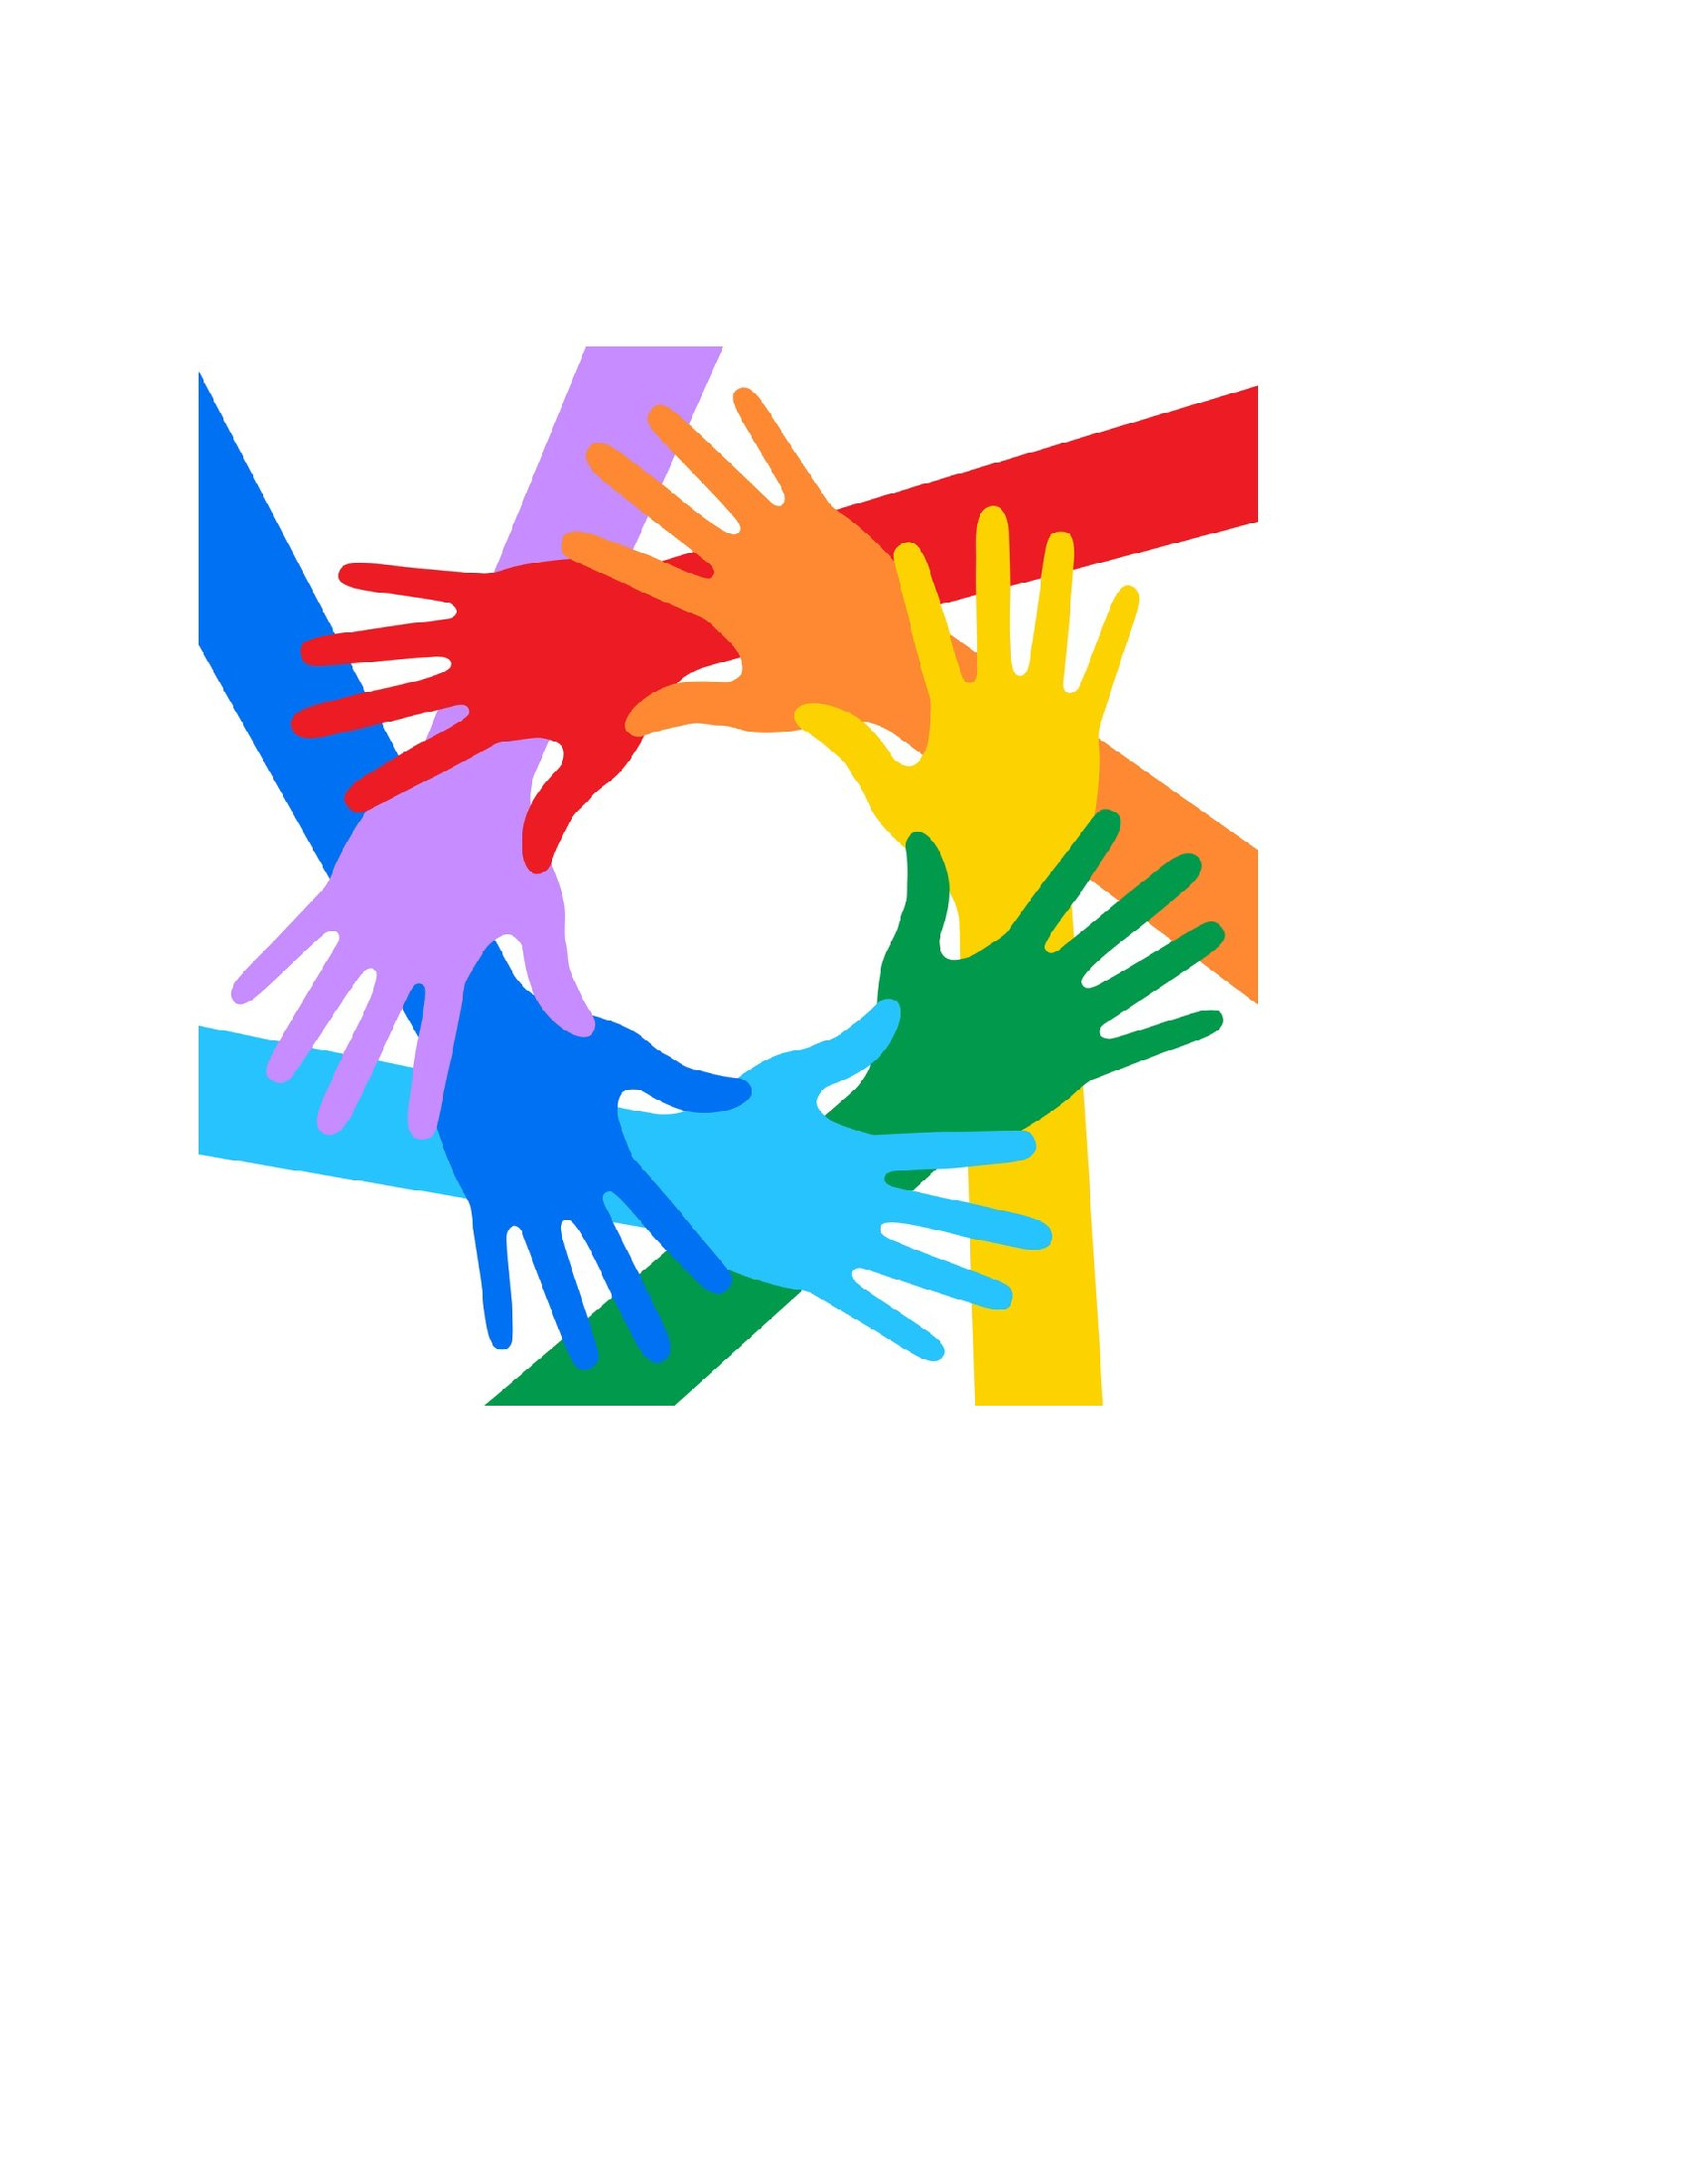 LUC_mission_statment_2015_rainbow_hands